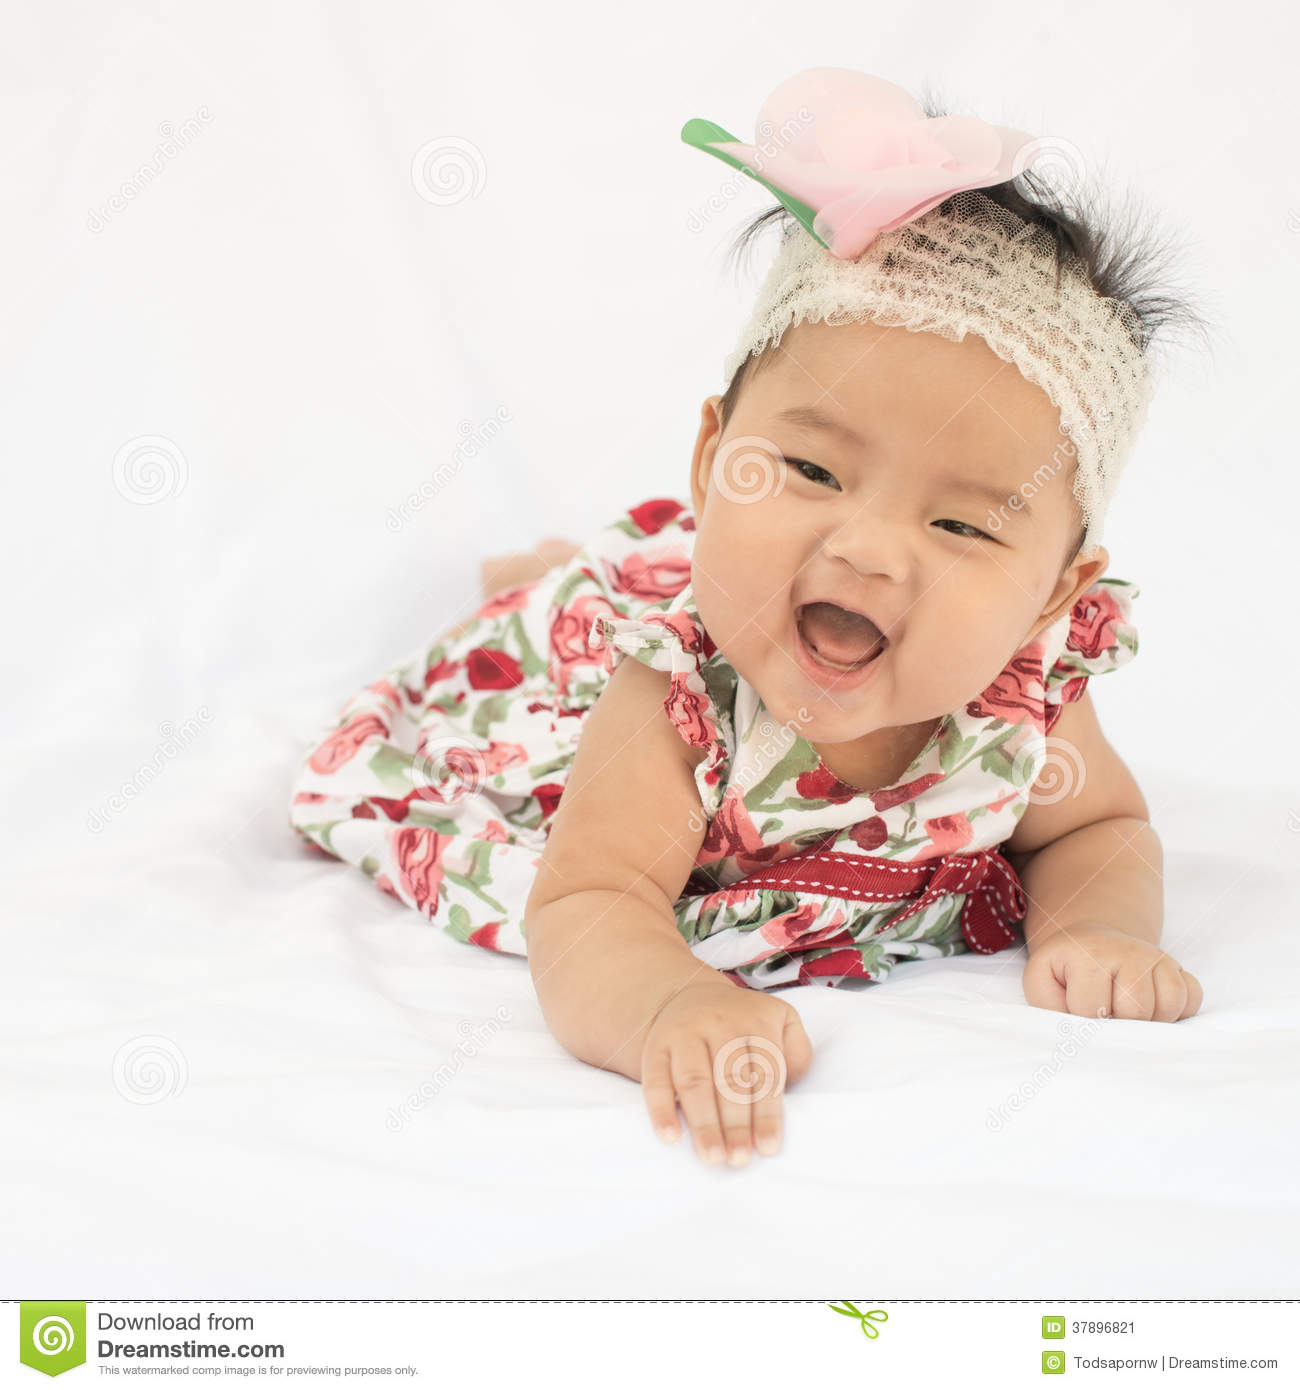 cute baby smiling girl with rose headband stock image - image of